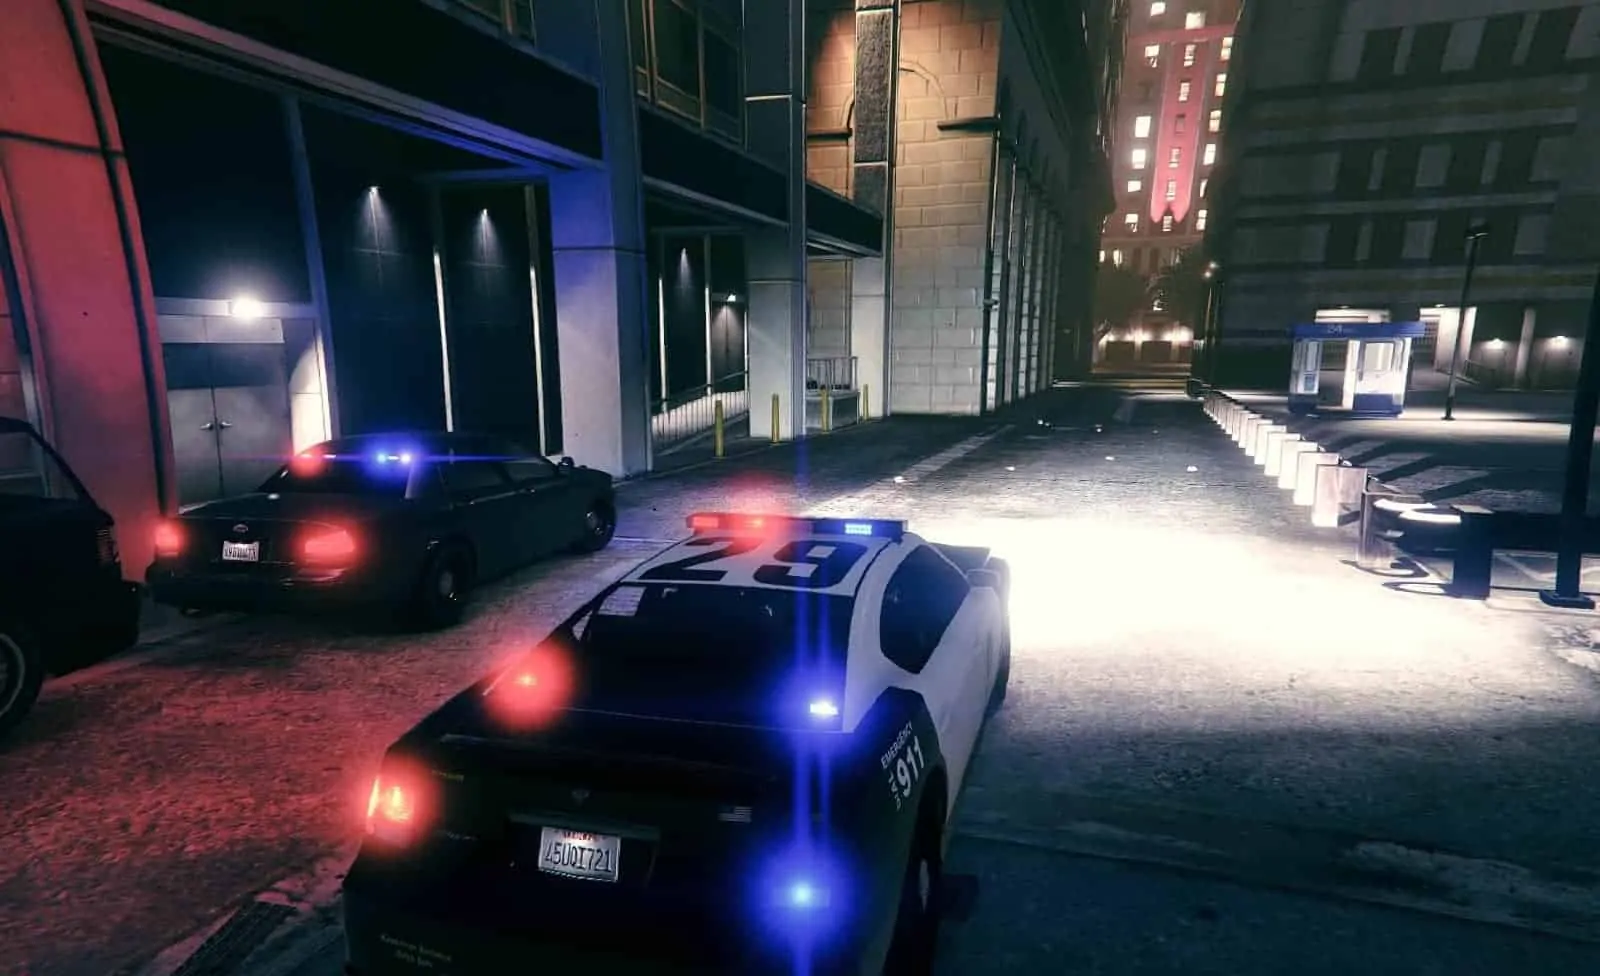 How to get gta v mods on ps4